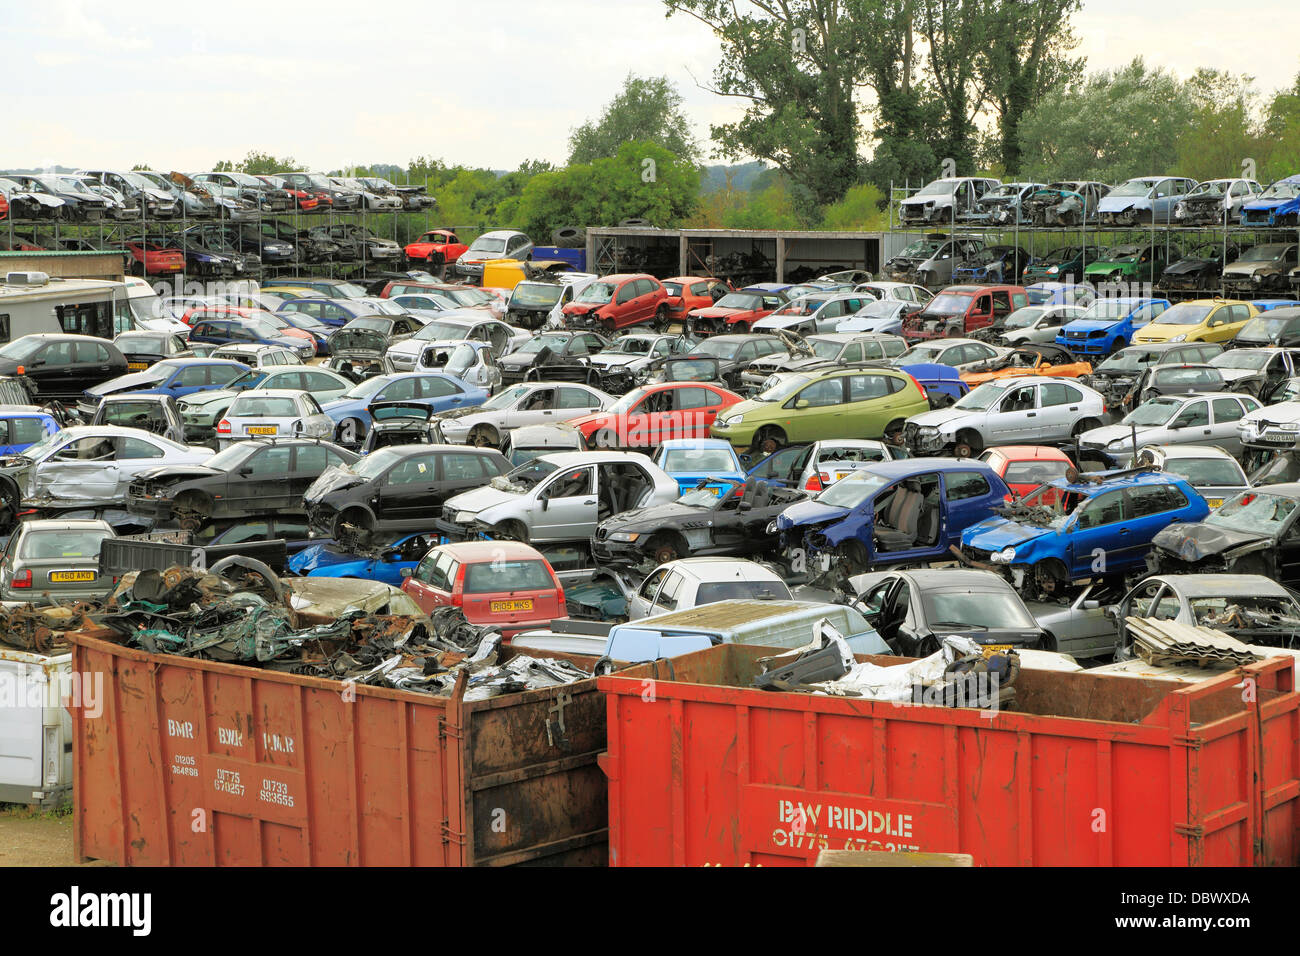 Wrecked Vehicles Dump , salvage yard, recycling depot cars scrap ...